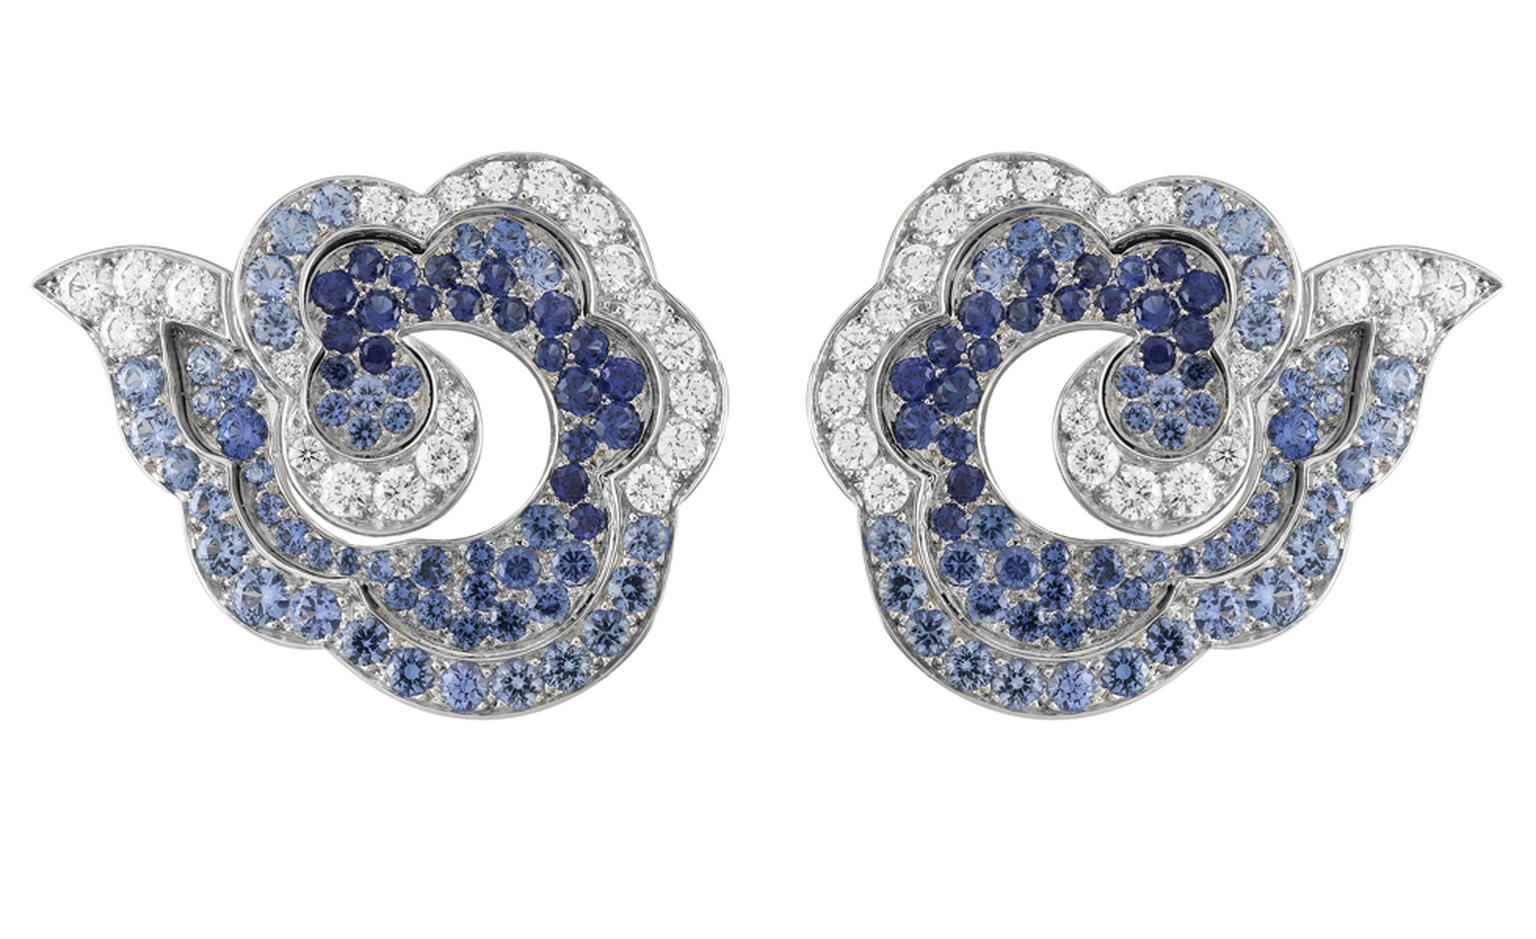 Van Cleef & Arpels, Bals de Légende, Le Bal du Siècle, Chinoiserie earrings.